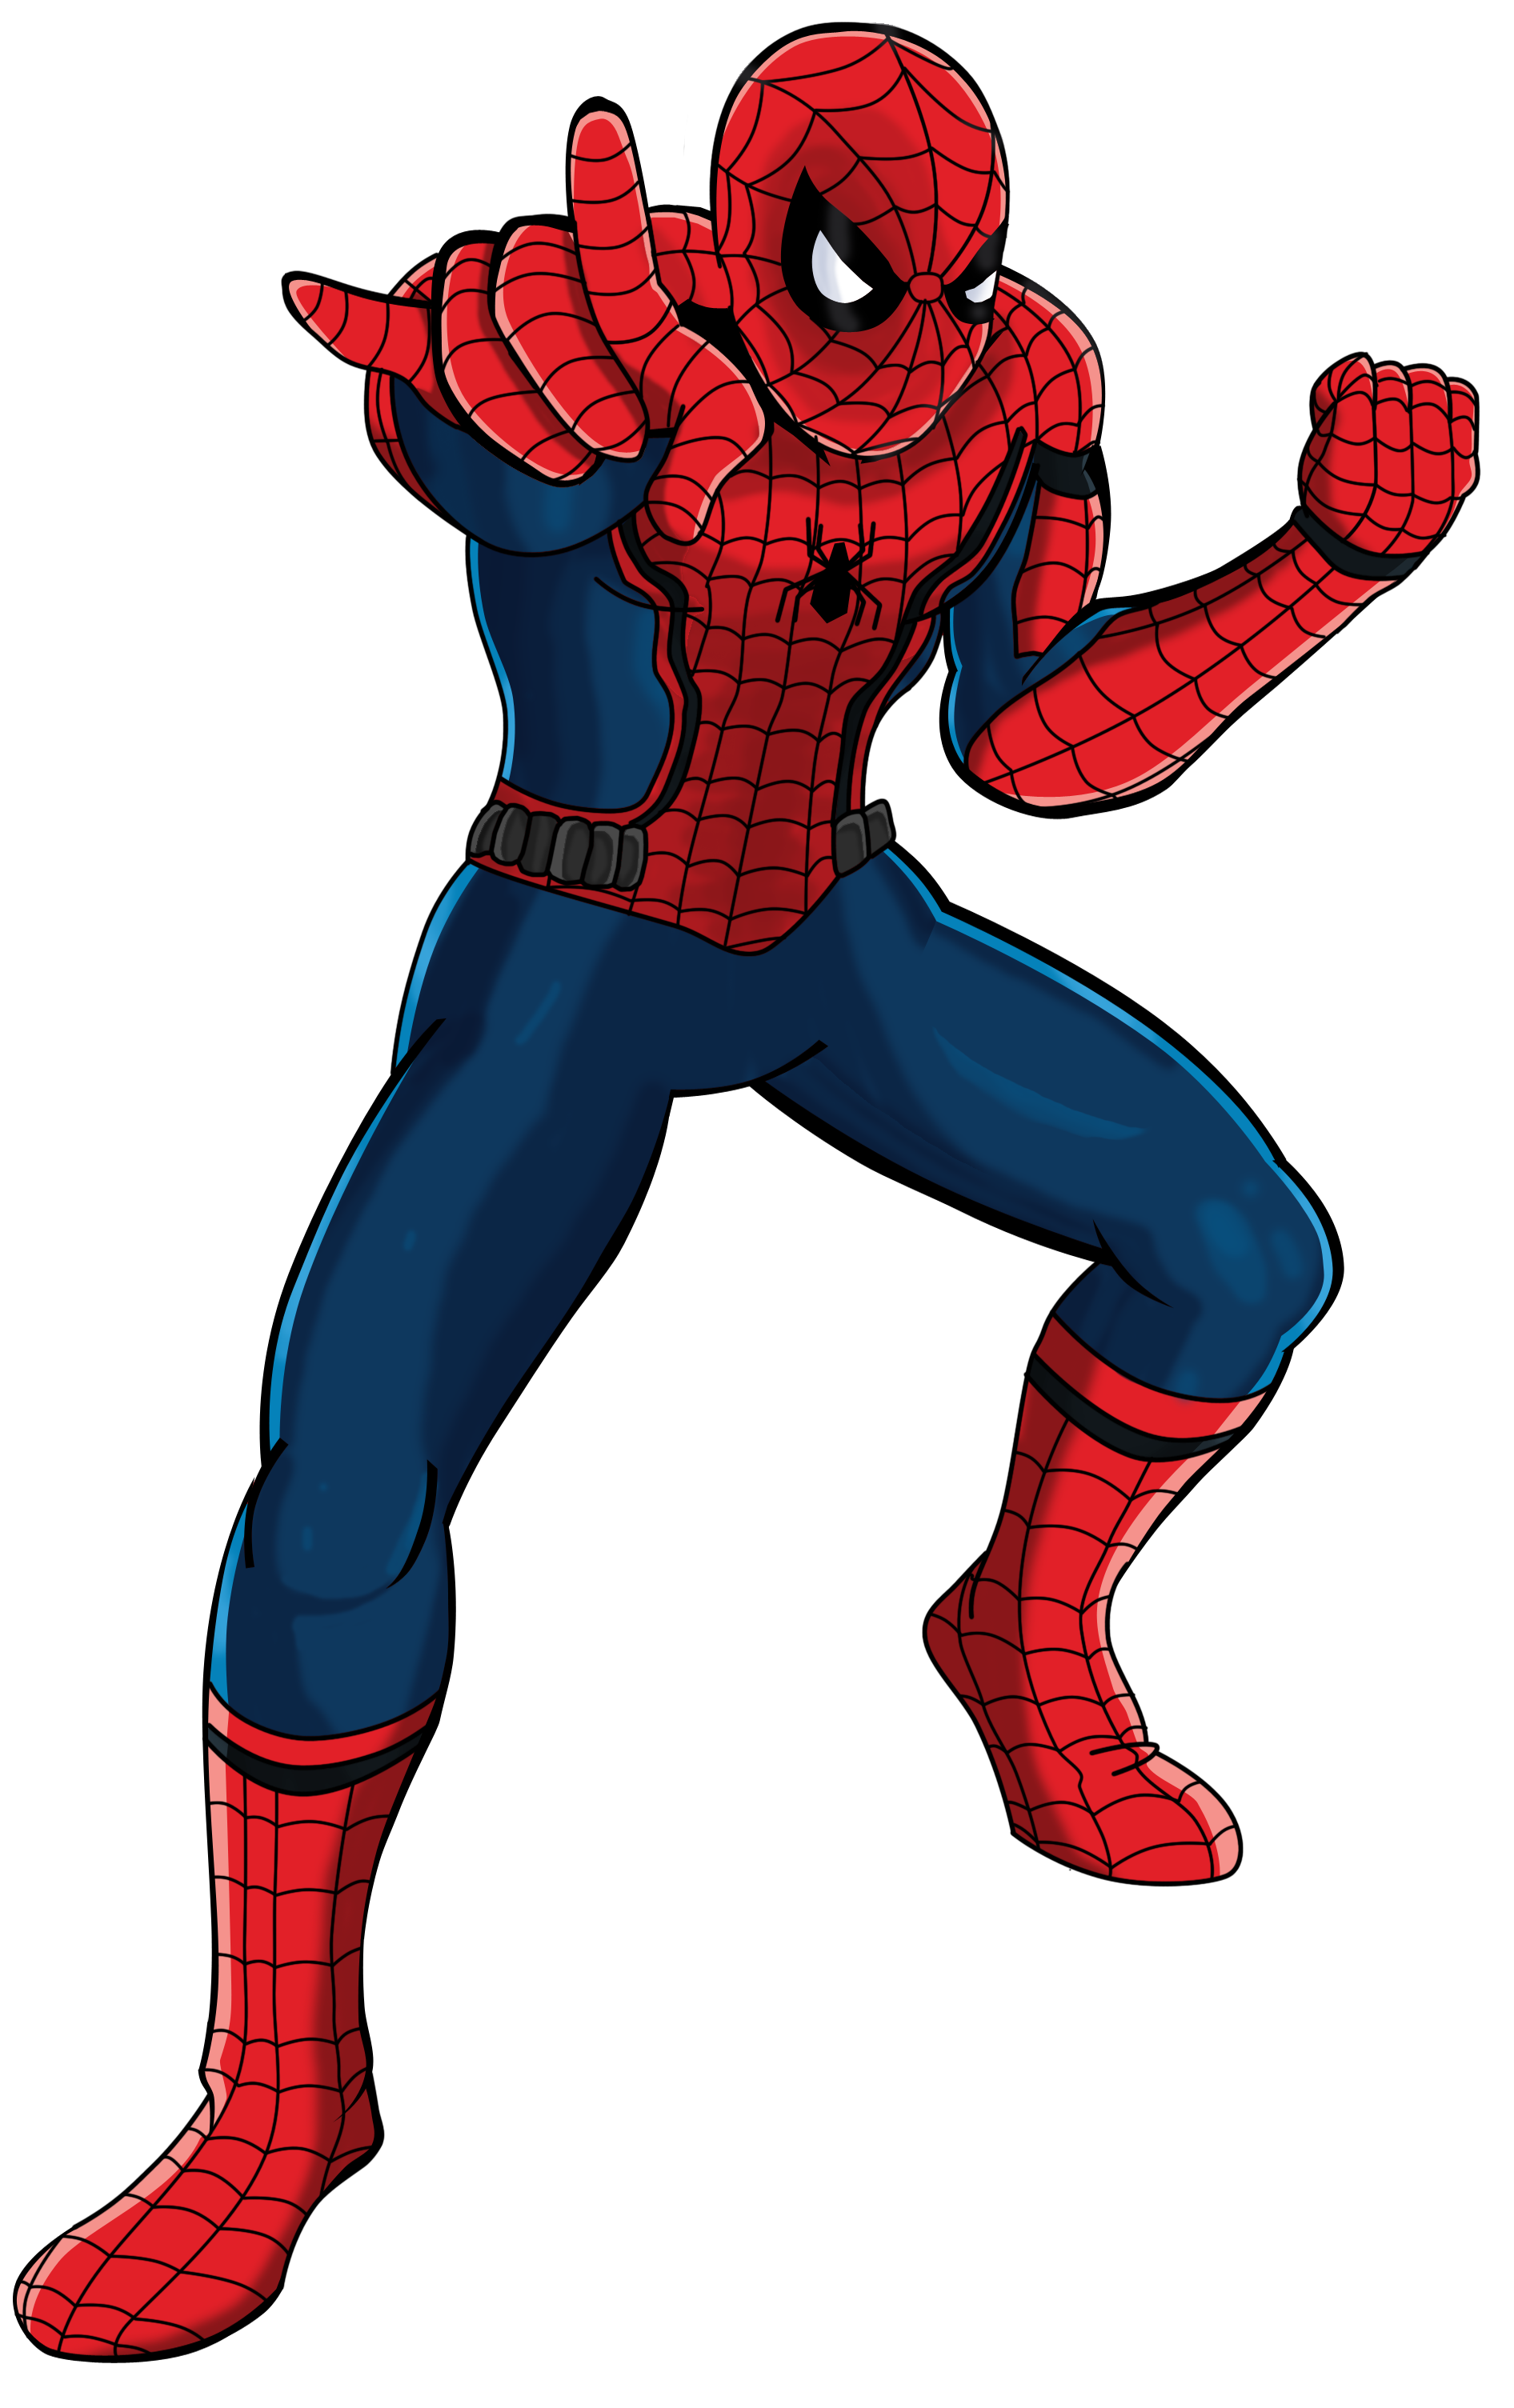 Spiderman Pictures Images Graphics For Facebook